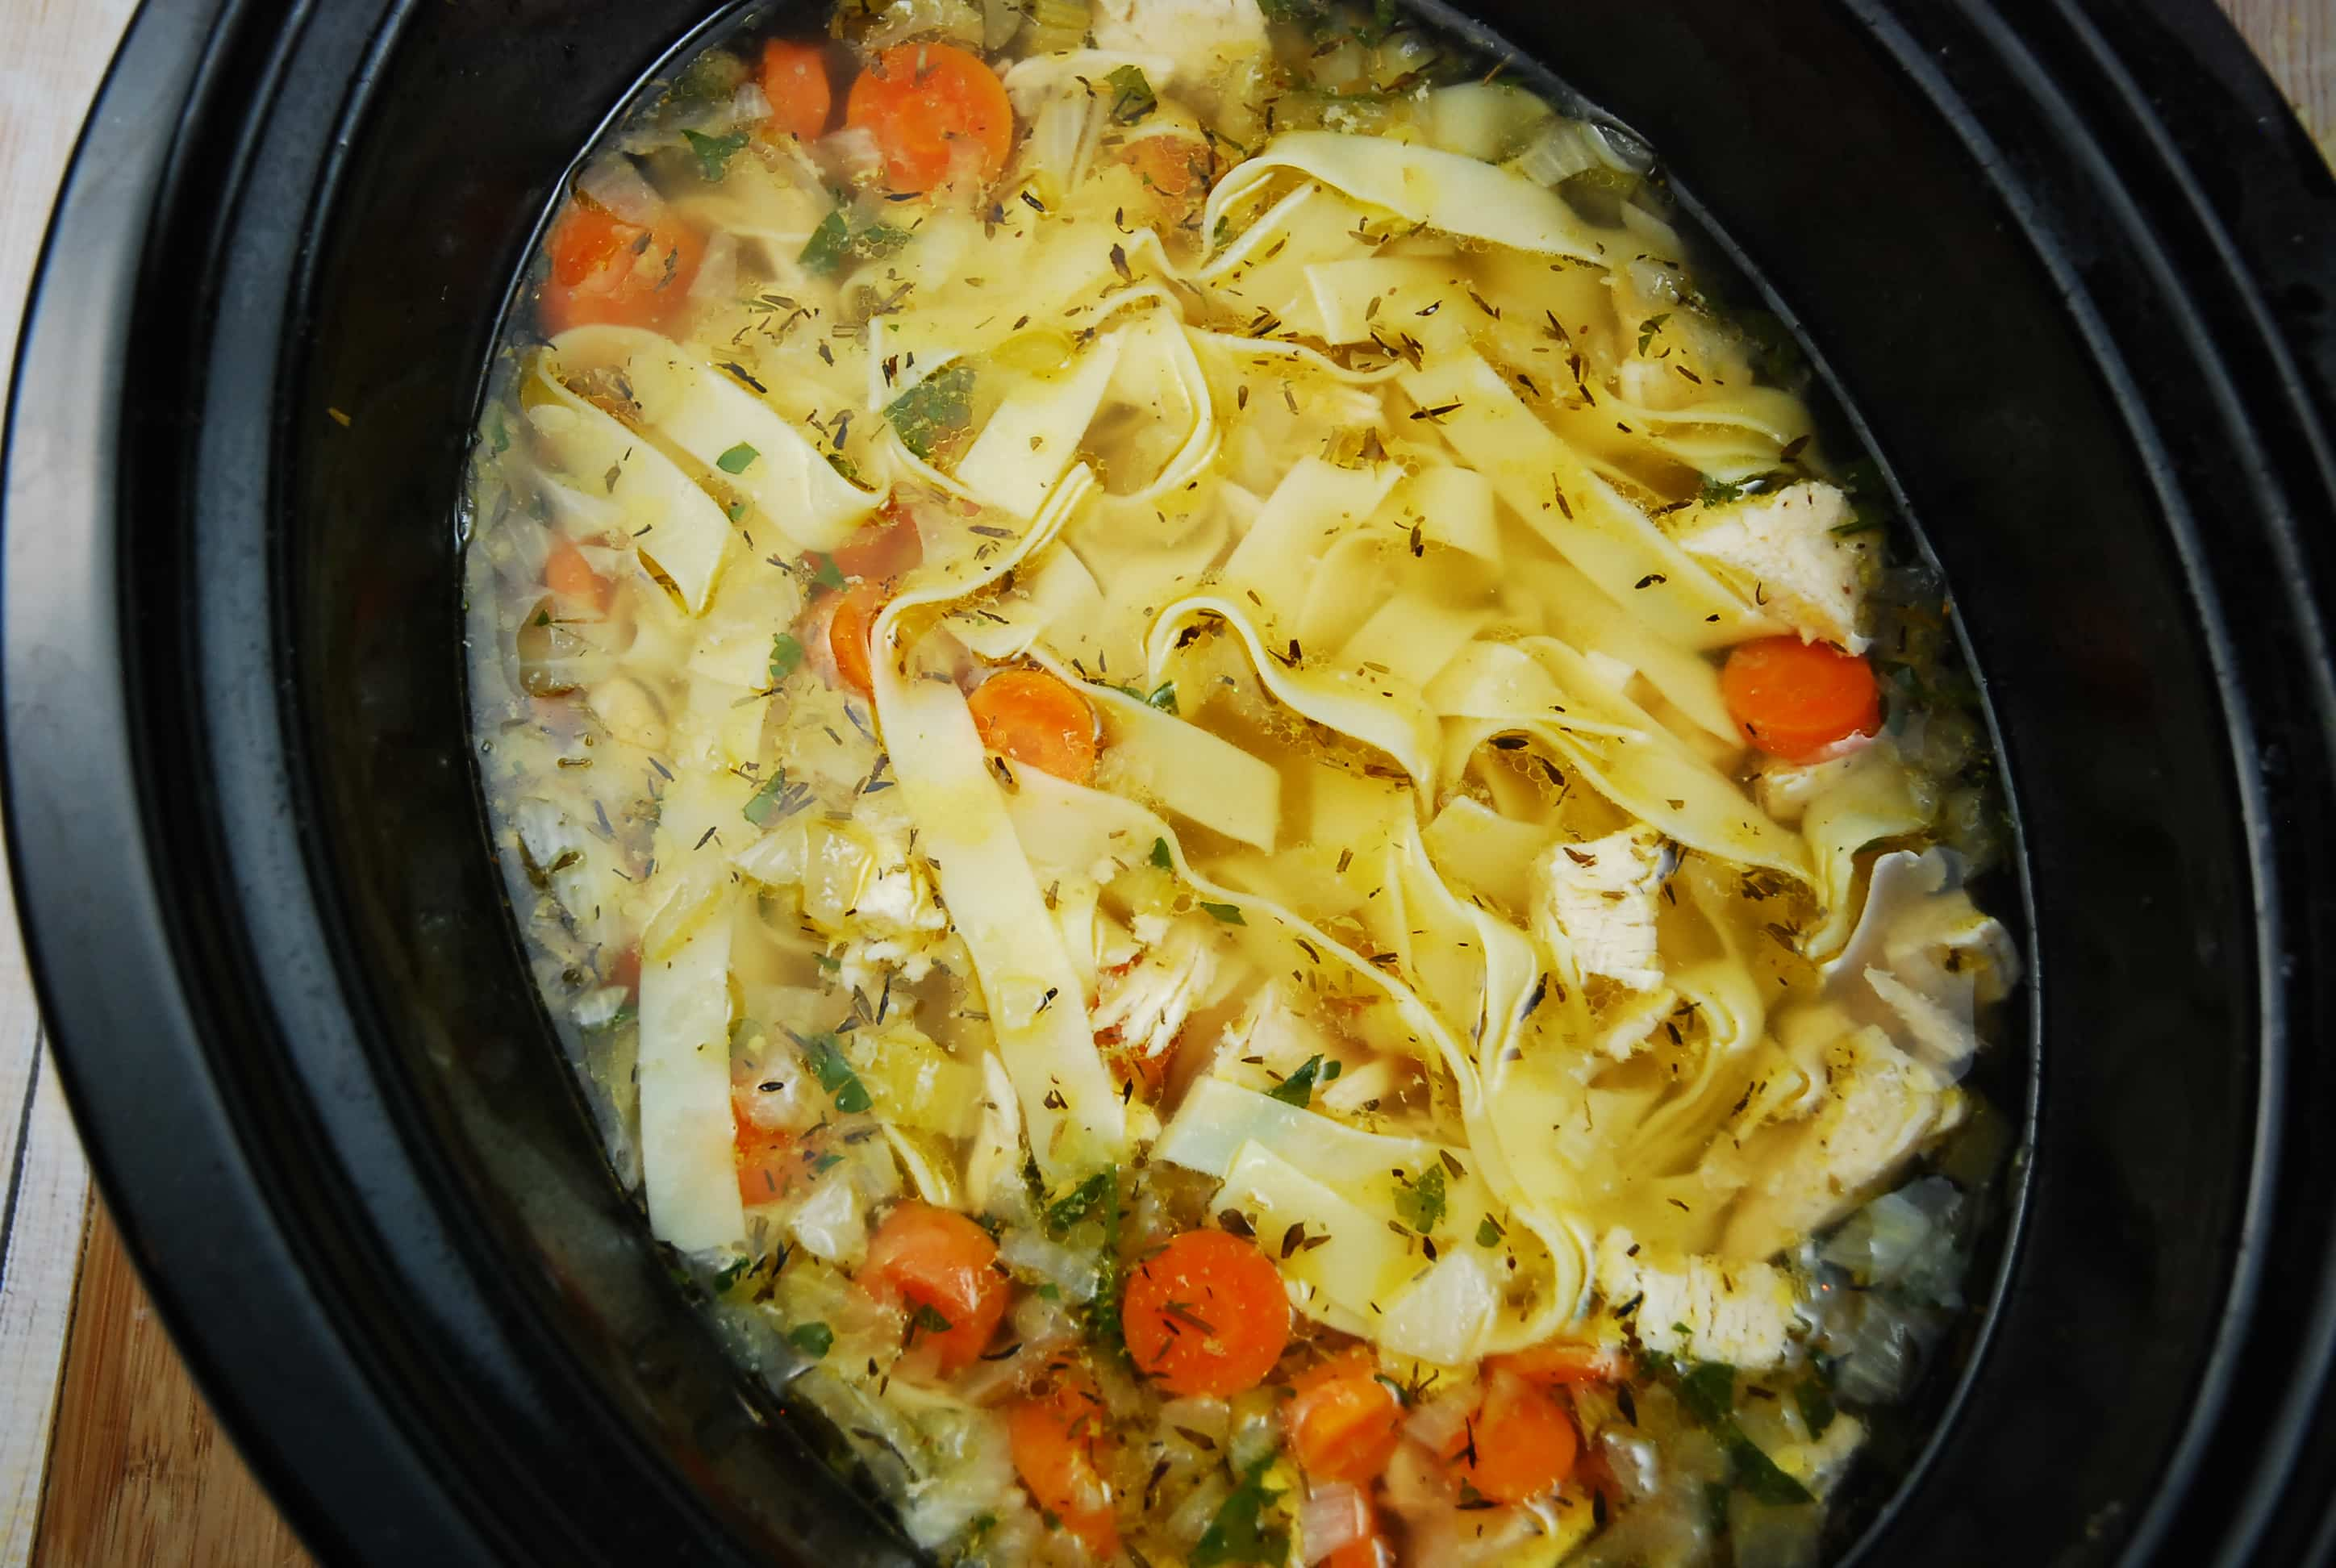 Crock pot chicken noodle soup recipe 4 points laaloosh for Best healthy chicken crock pot recipes